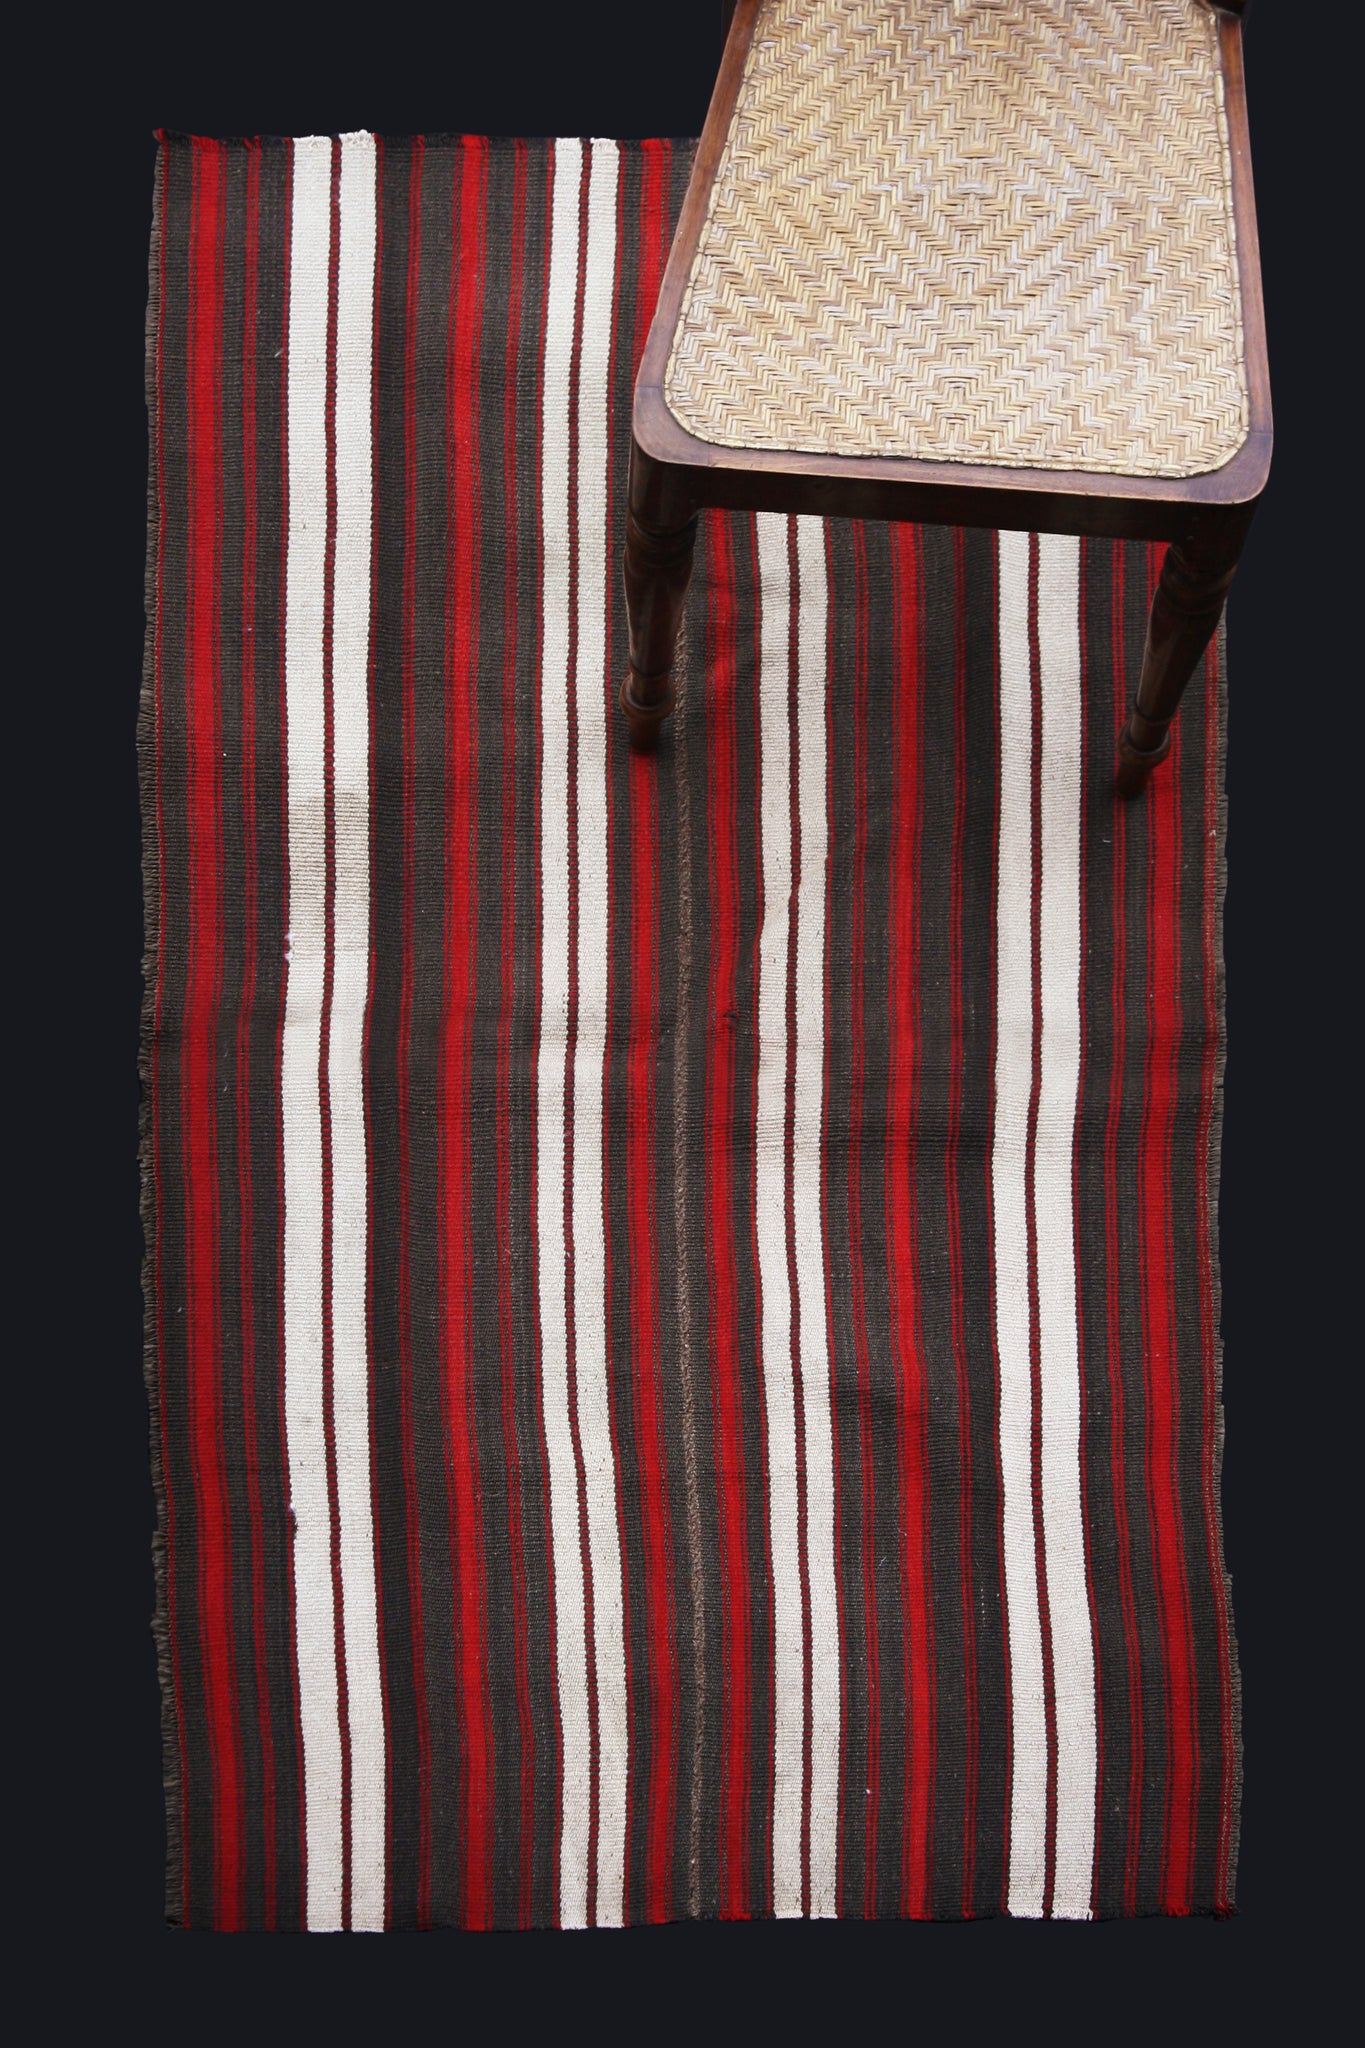 Acik Heybe With Grey, Red And White Stripes (2' 1'' x 5' 3'')